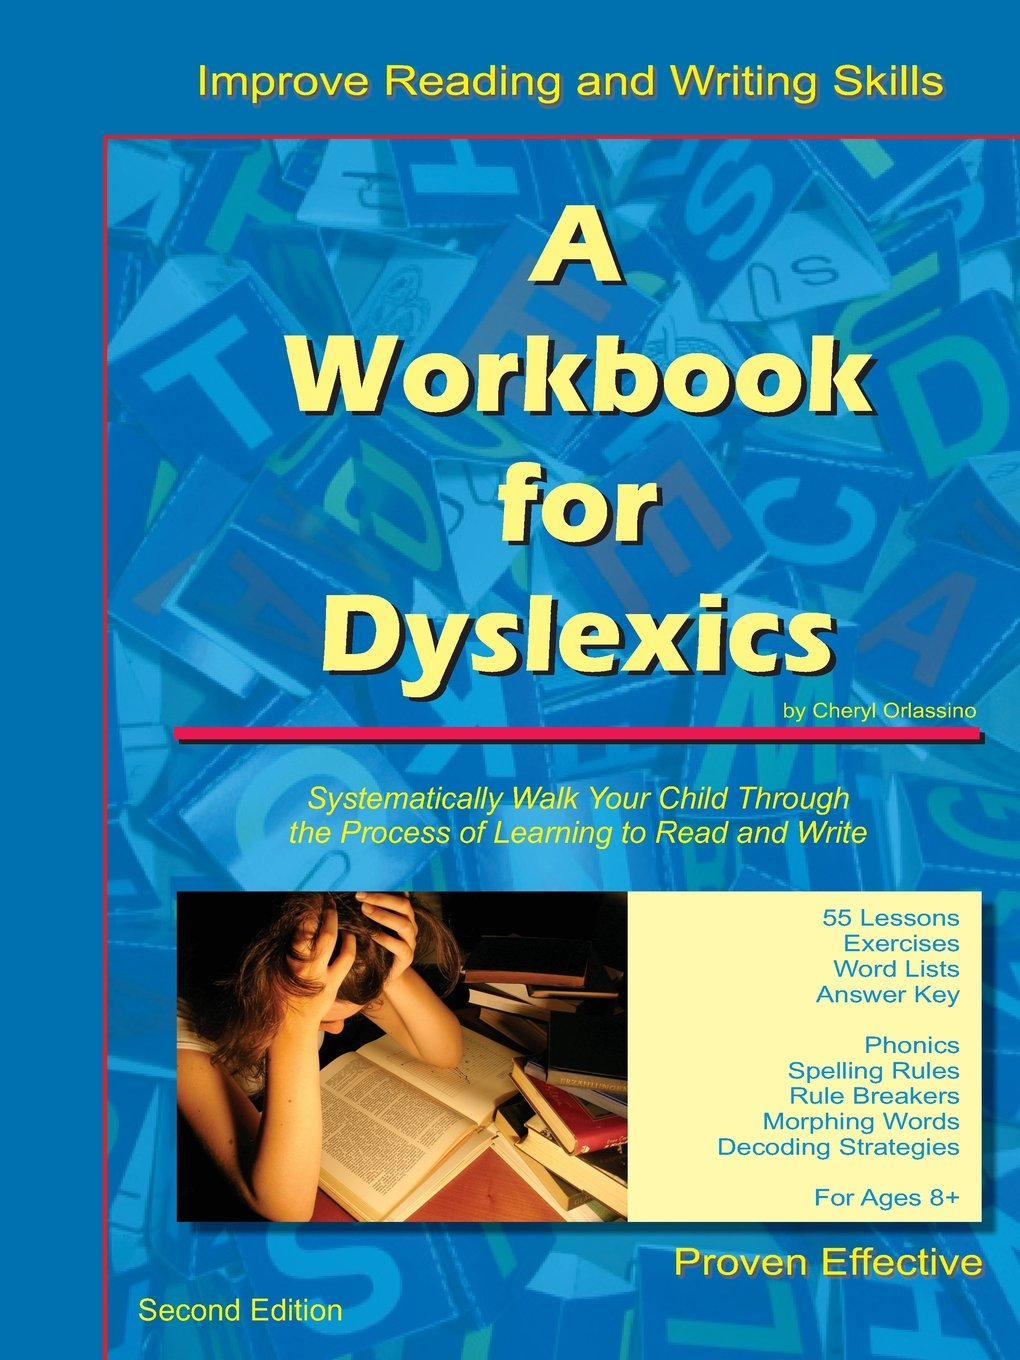 Amazon.com: A Workbook for Dyslexics, 2nd Edition (9781430328032 ...